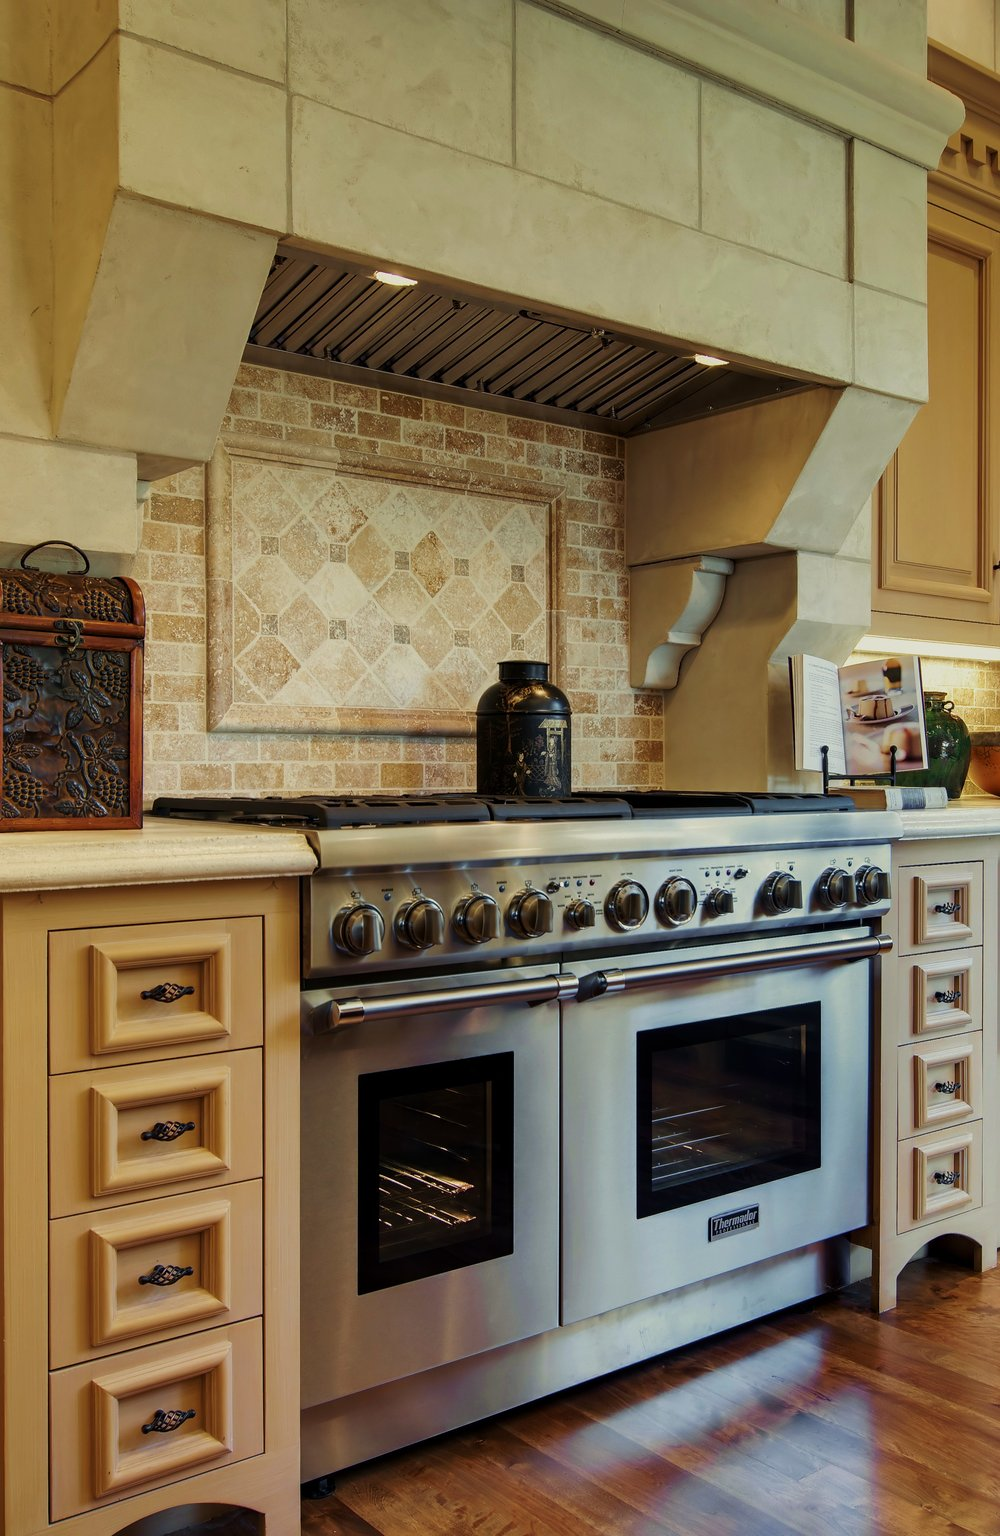 1043 Zac kitchen range.jpg